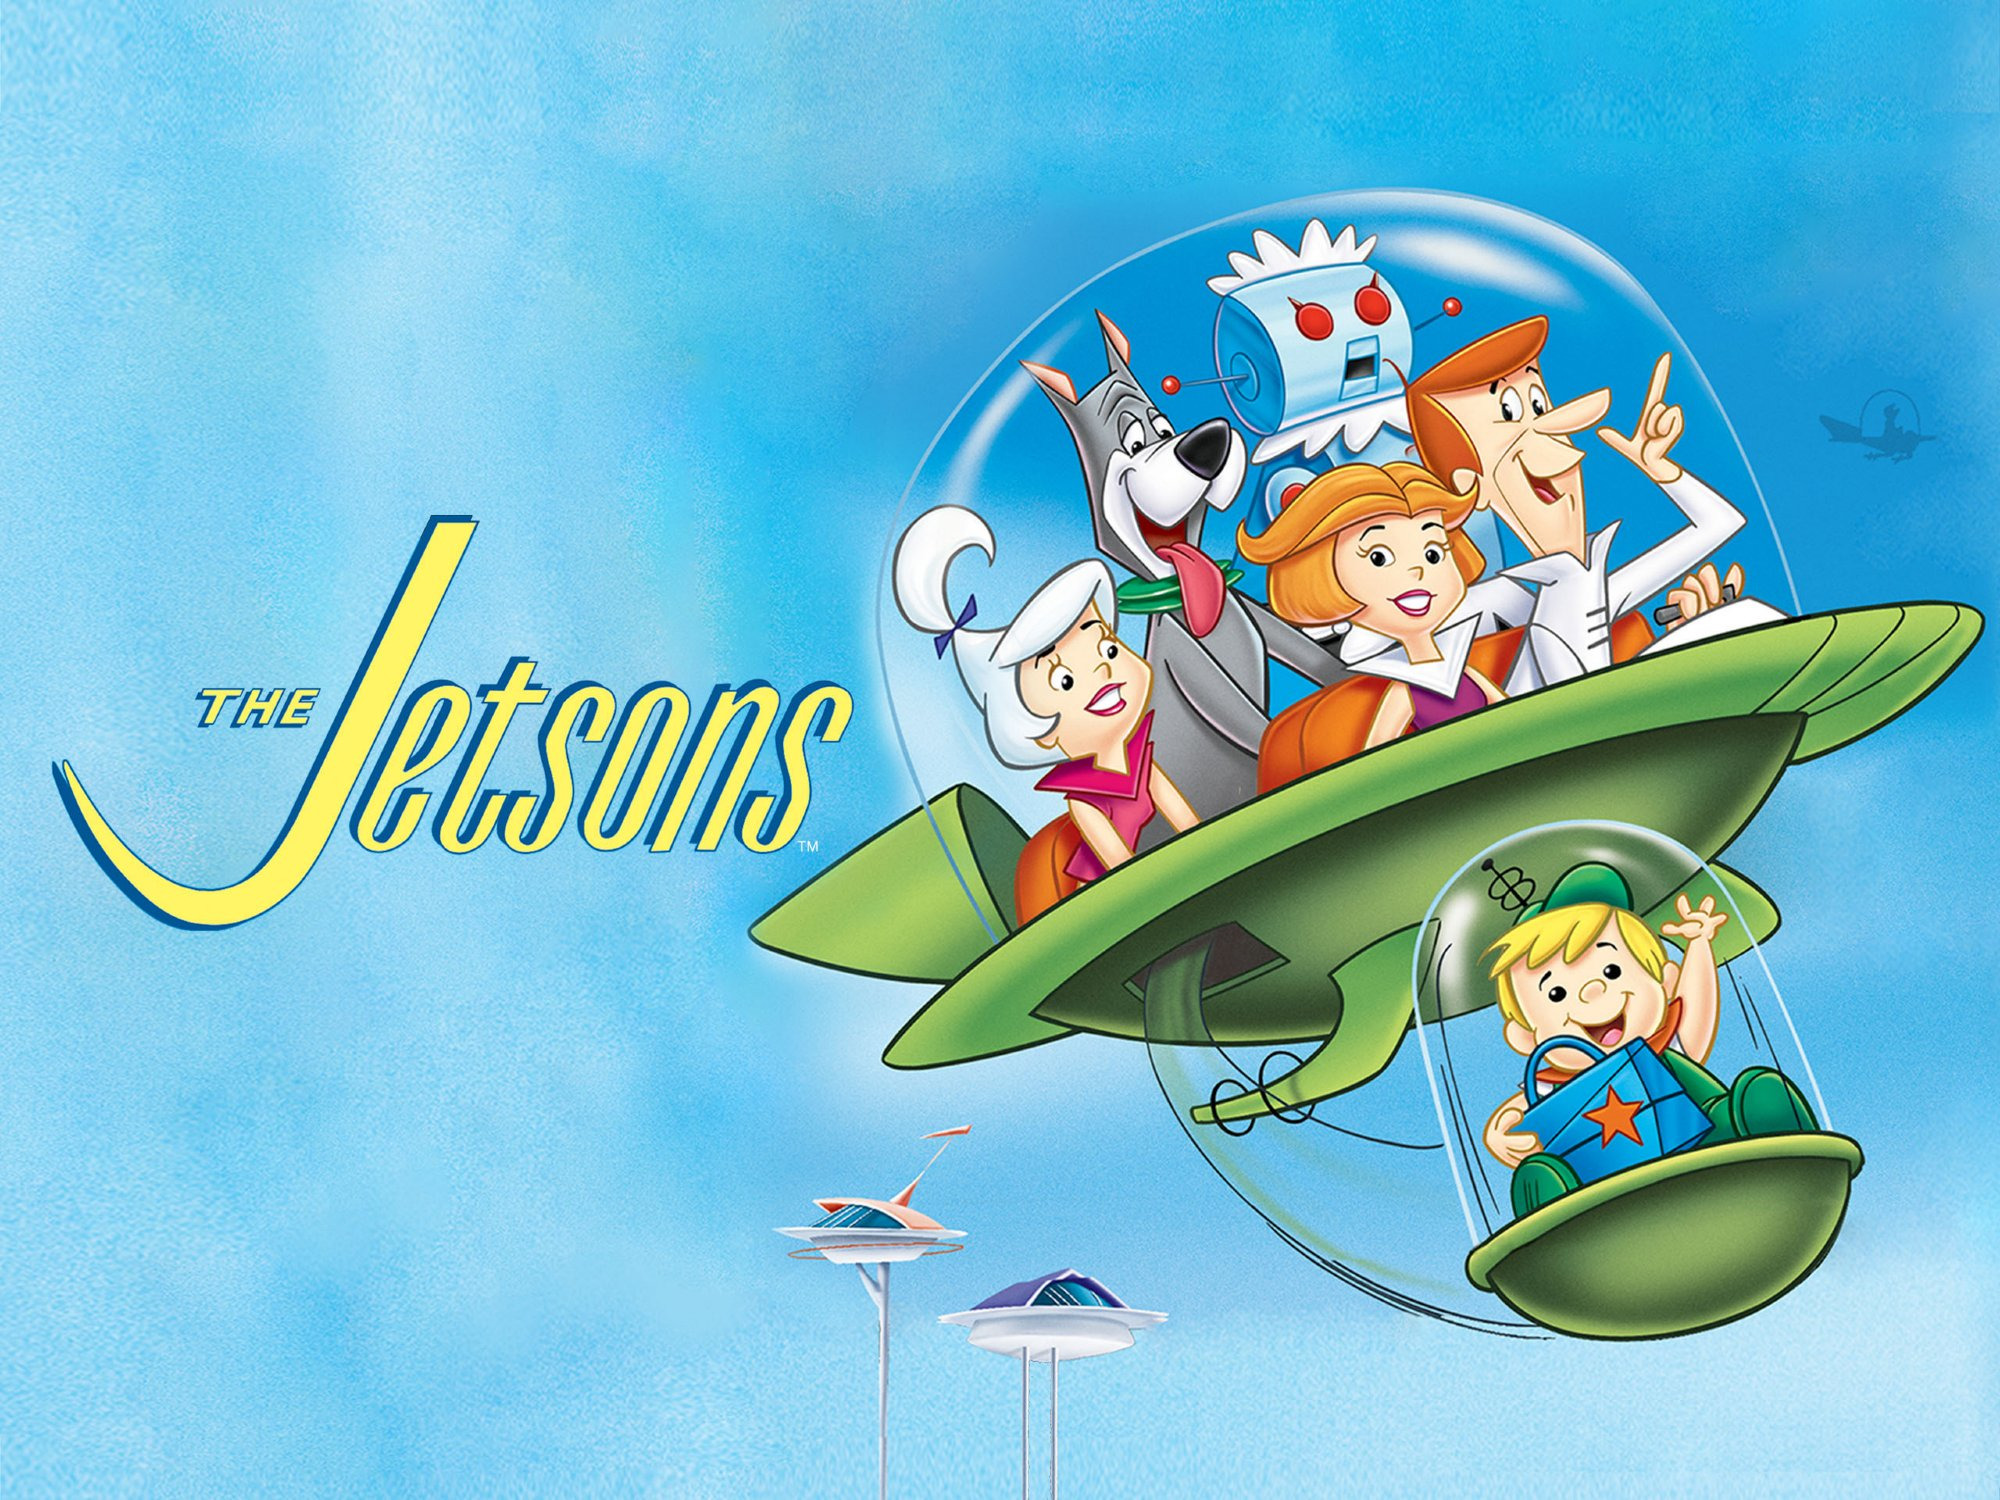 Watch The Jetsons Episodes on Syndication | Season 3 (1987) | TV Guide